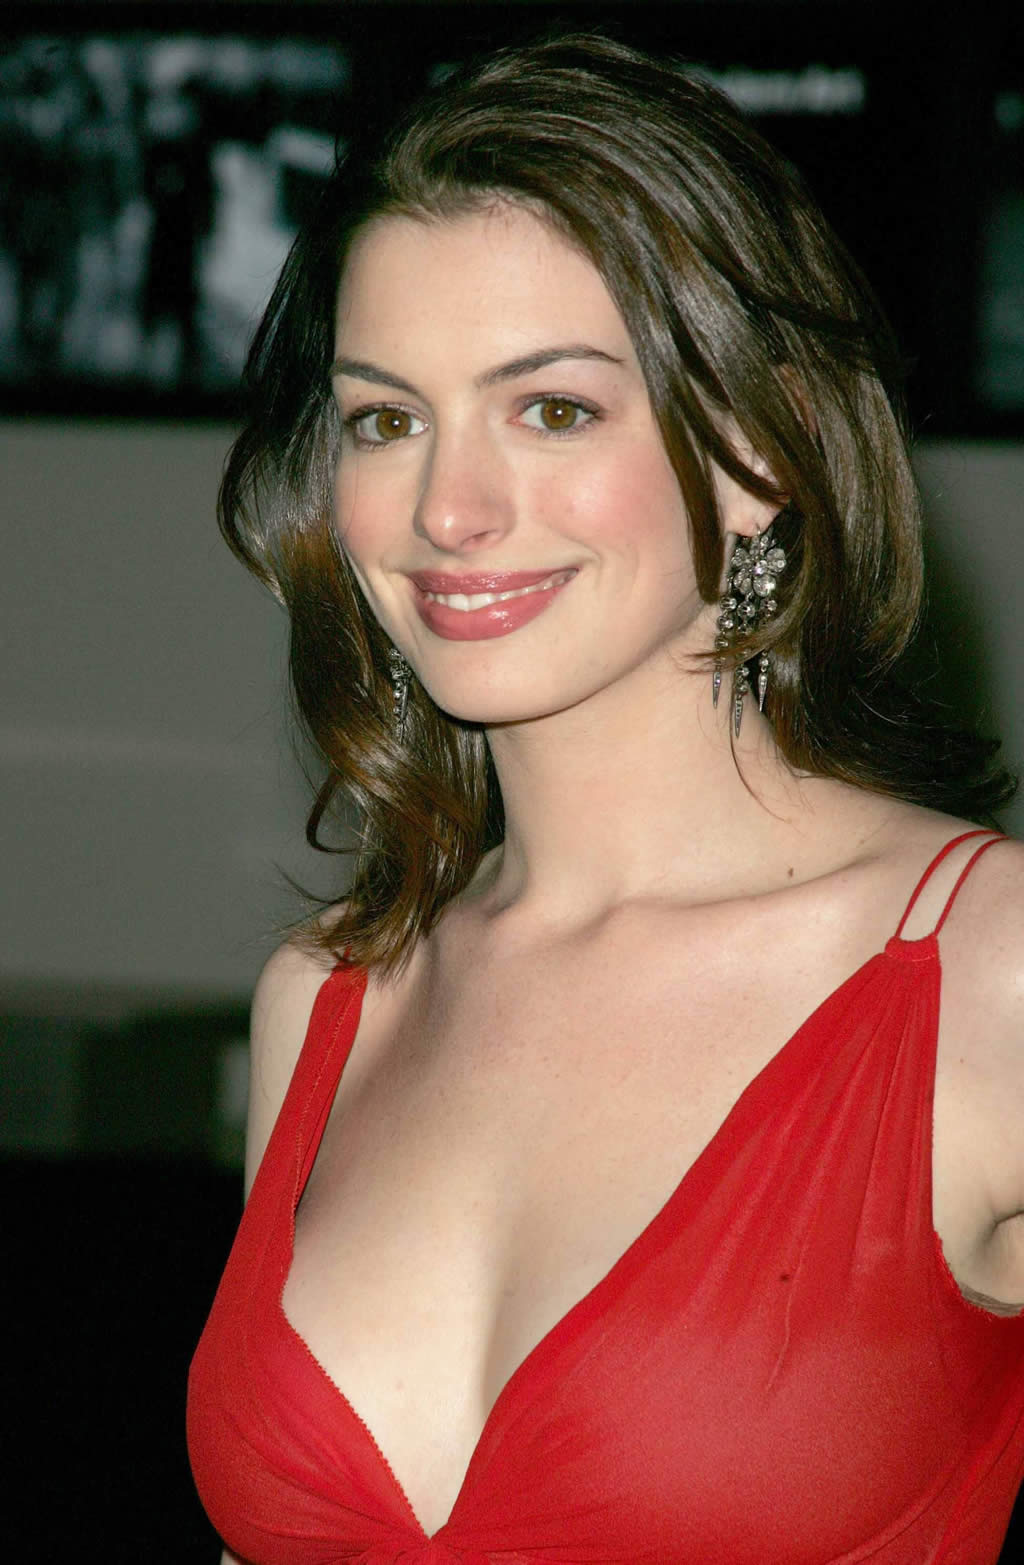 hollywood actress anne hathaway tv celebrity cosmics april